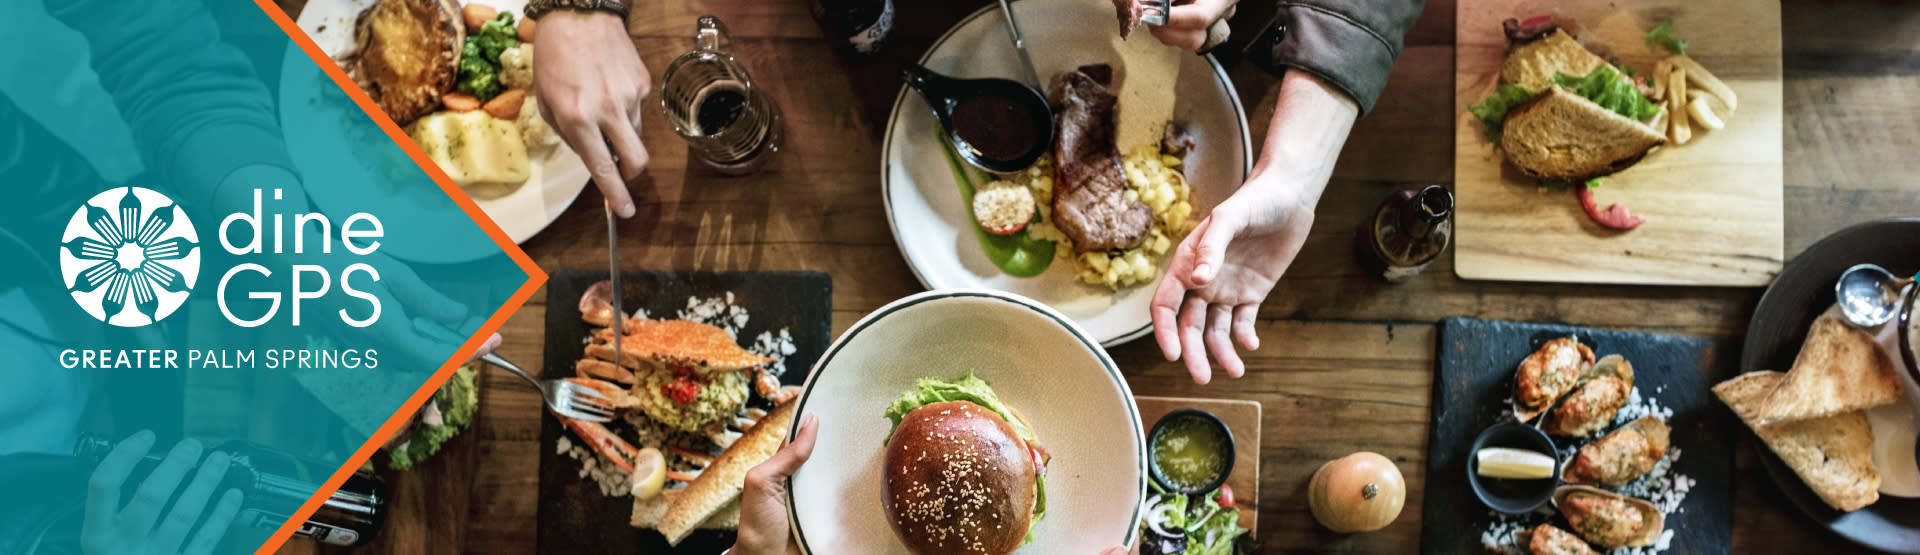 dineGPS online dining guide